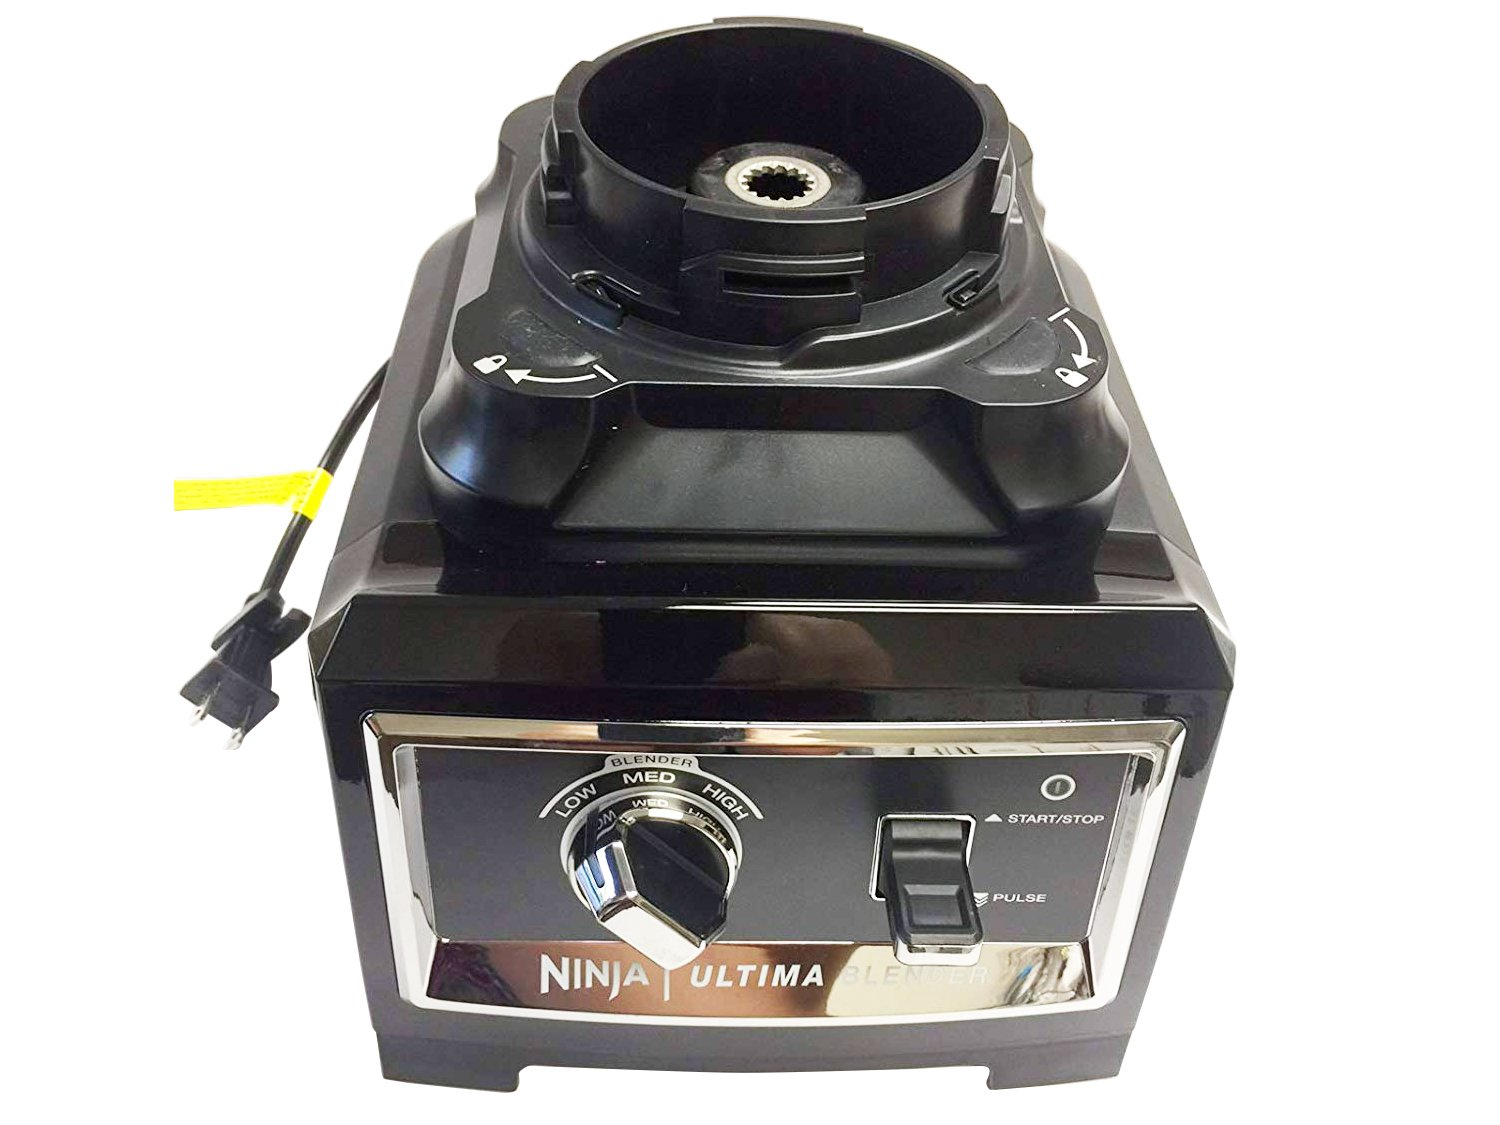 NEW Ninja Motor Base for Ultima BL800 1500-Watt 2.5 HP Professional Blender